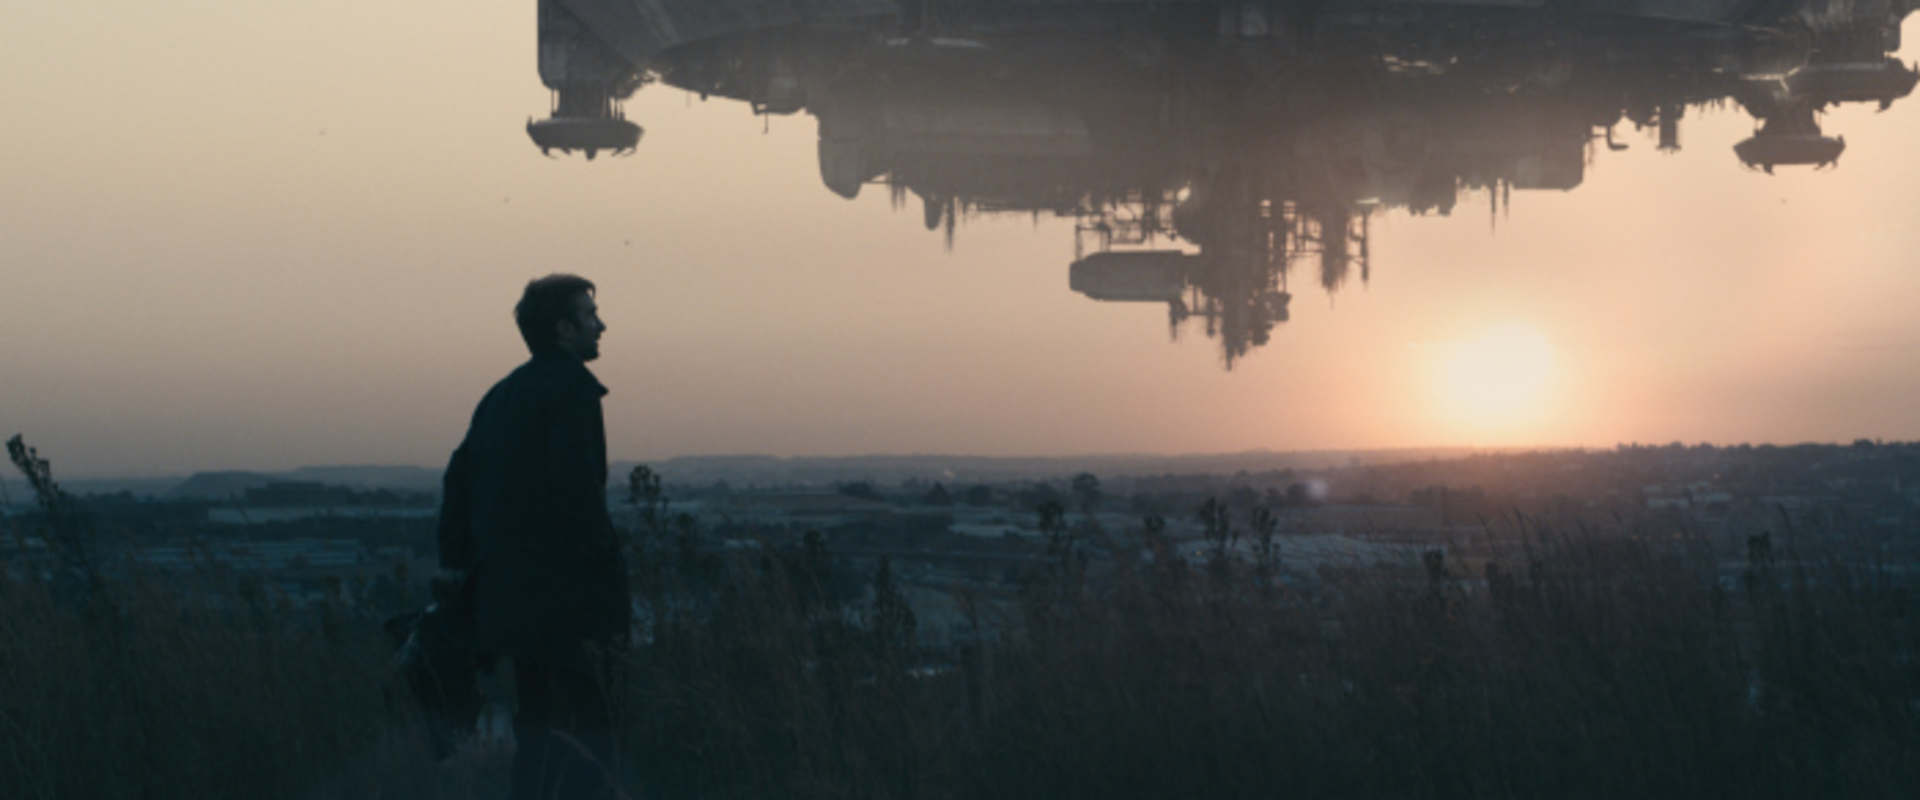 District 9 background 1